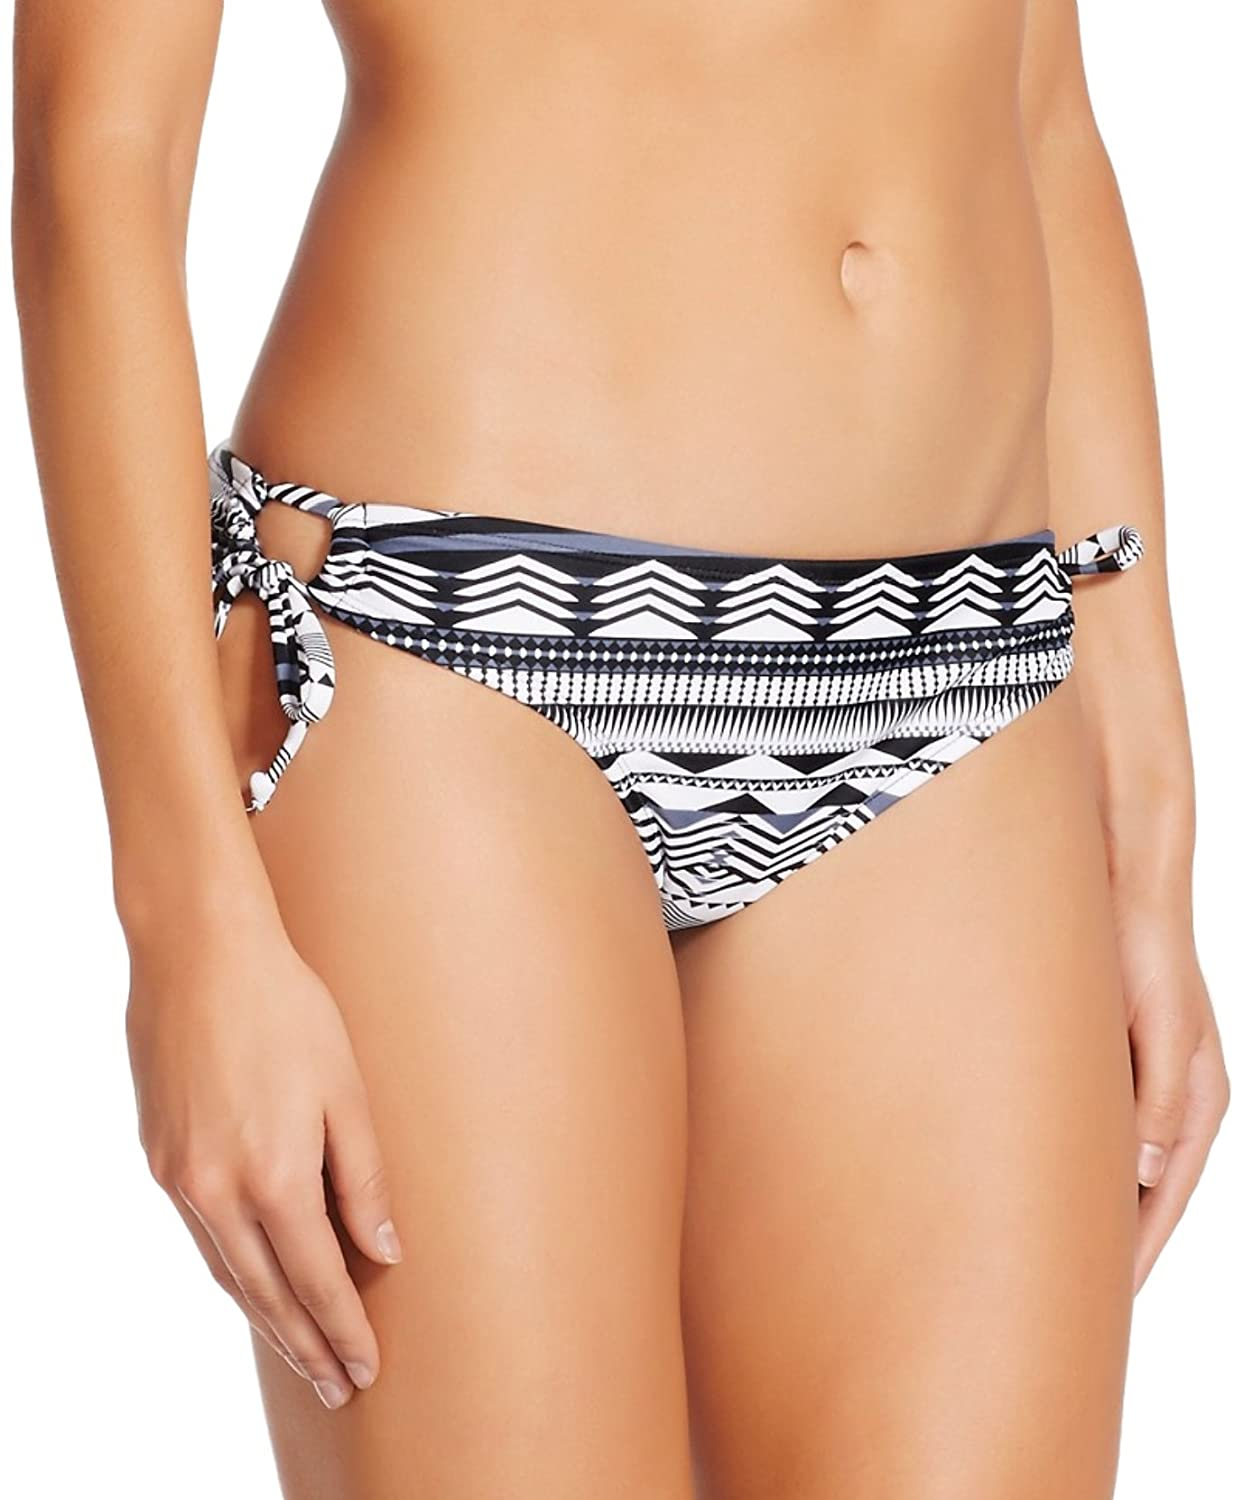 マスクされたブランドMossimoレディースKeyhole文字列Hipster Bikini Bottom B072DSHXN3 XL|Black/White Chevron Print